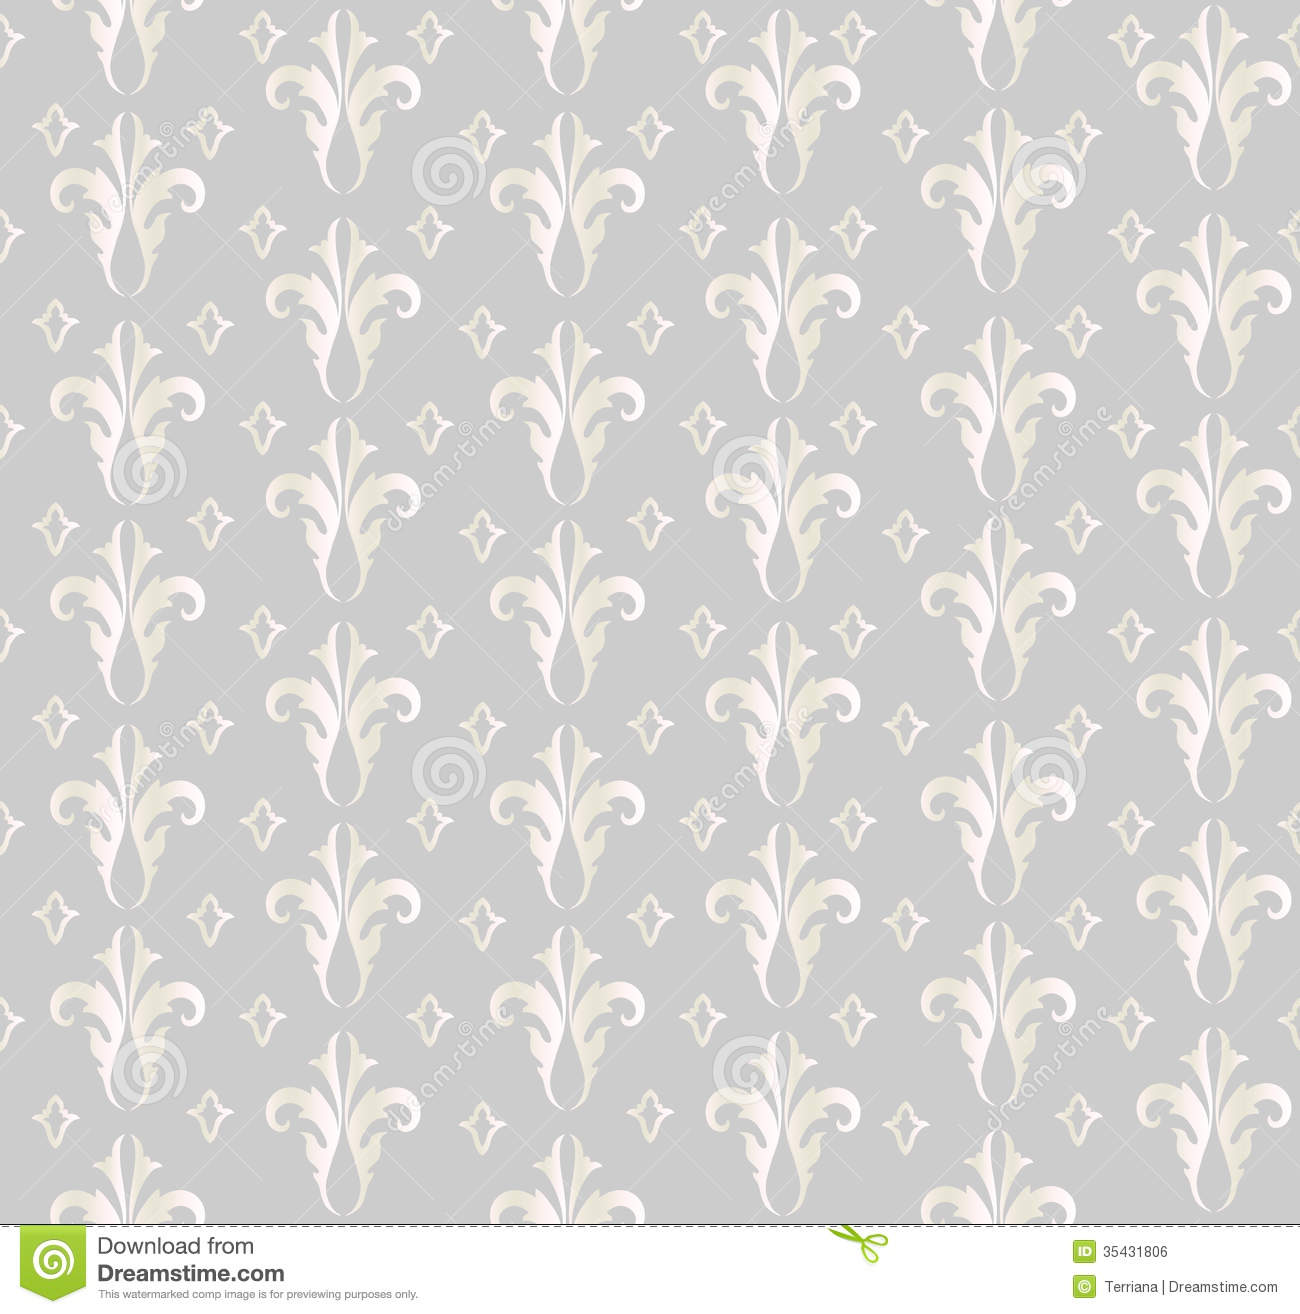 Floral Seamless Background. Abstract Grey And White Floral